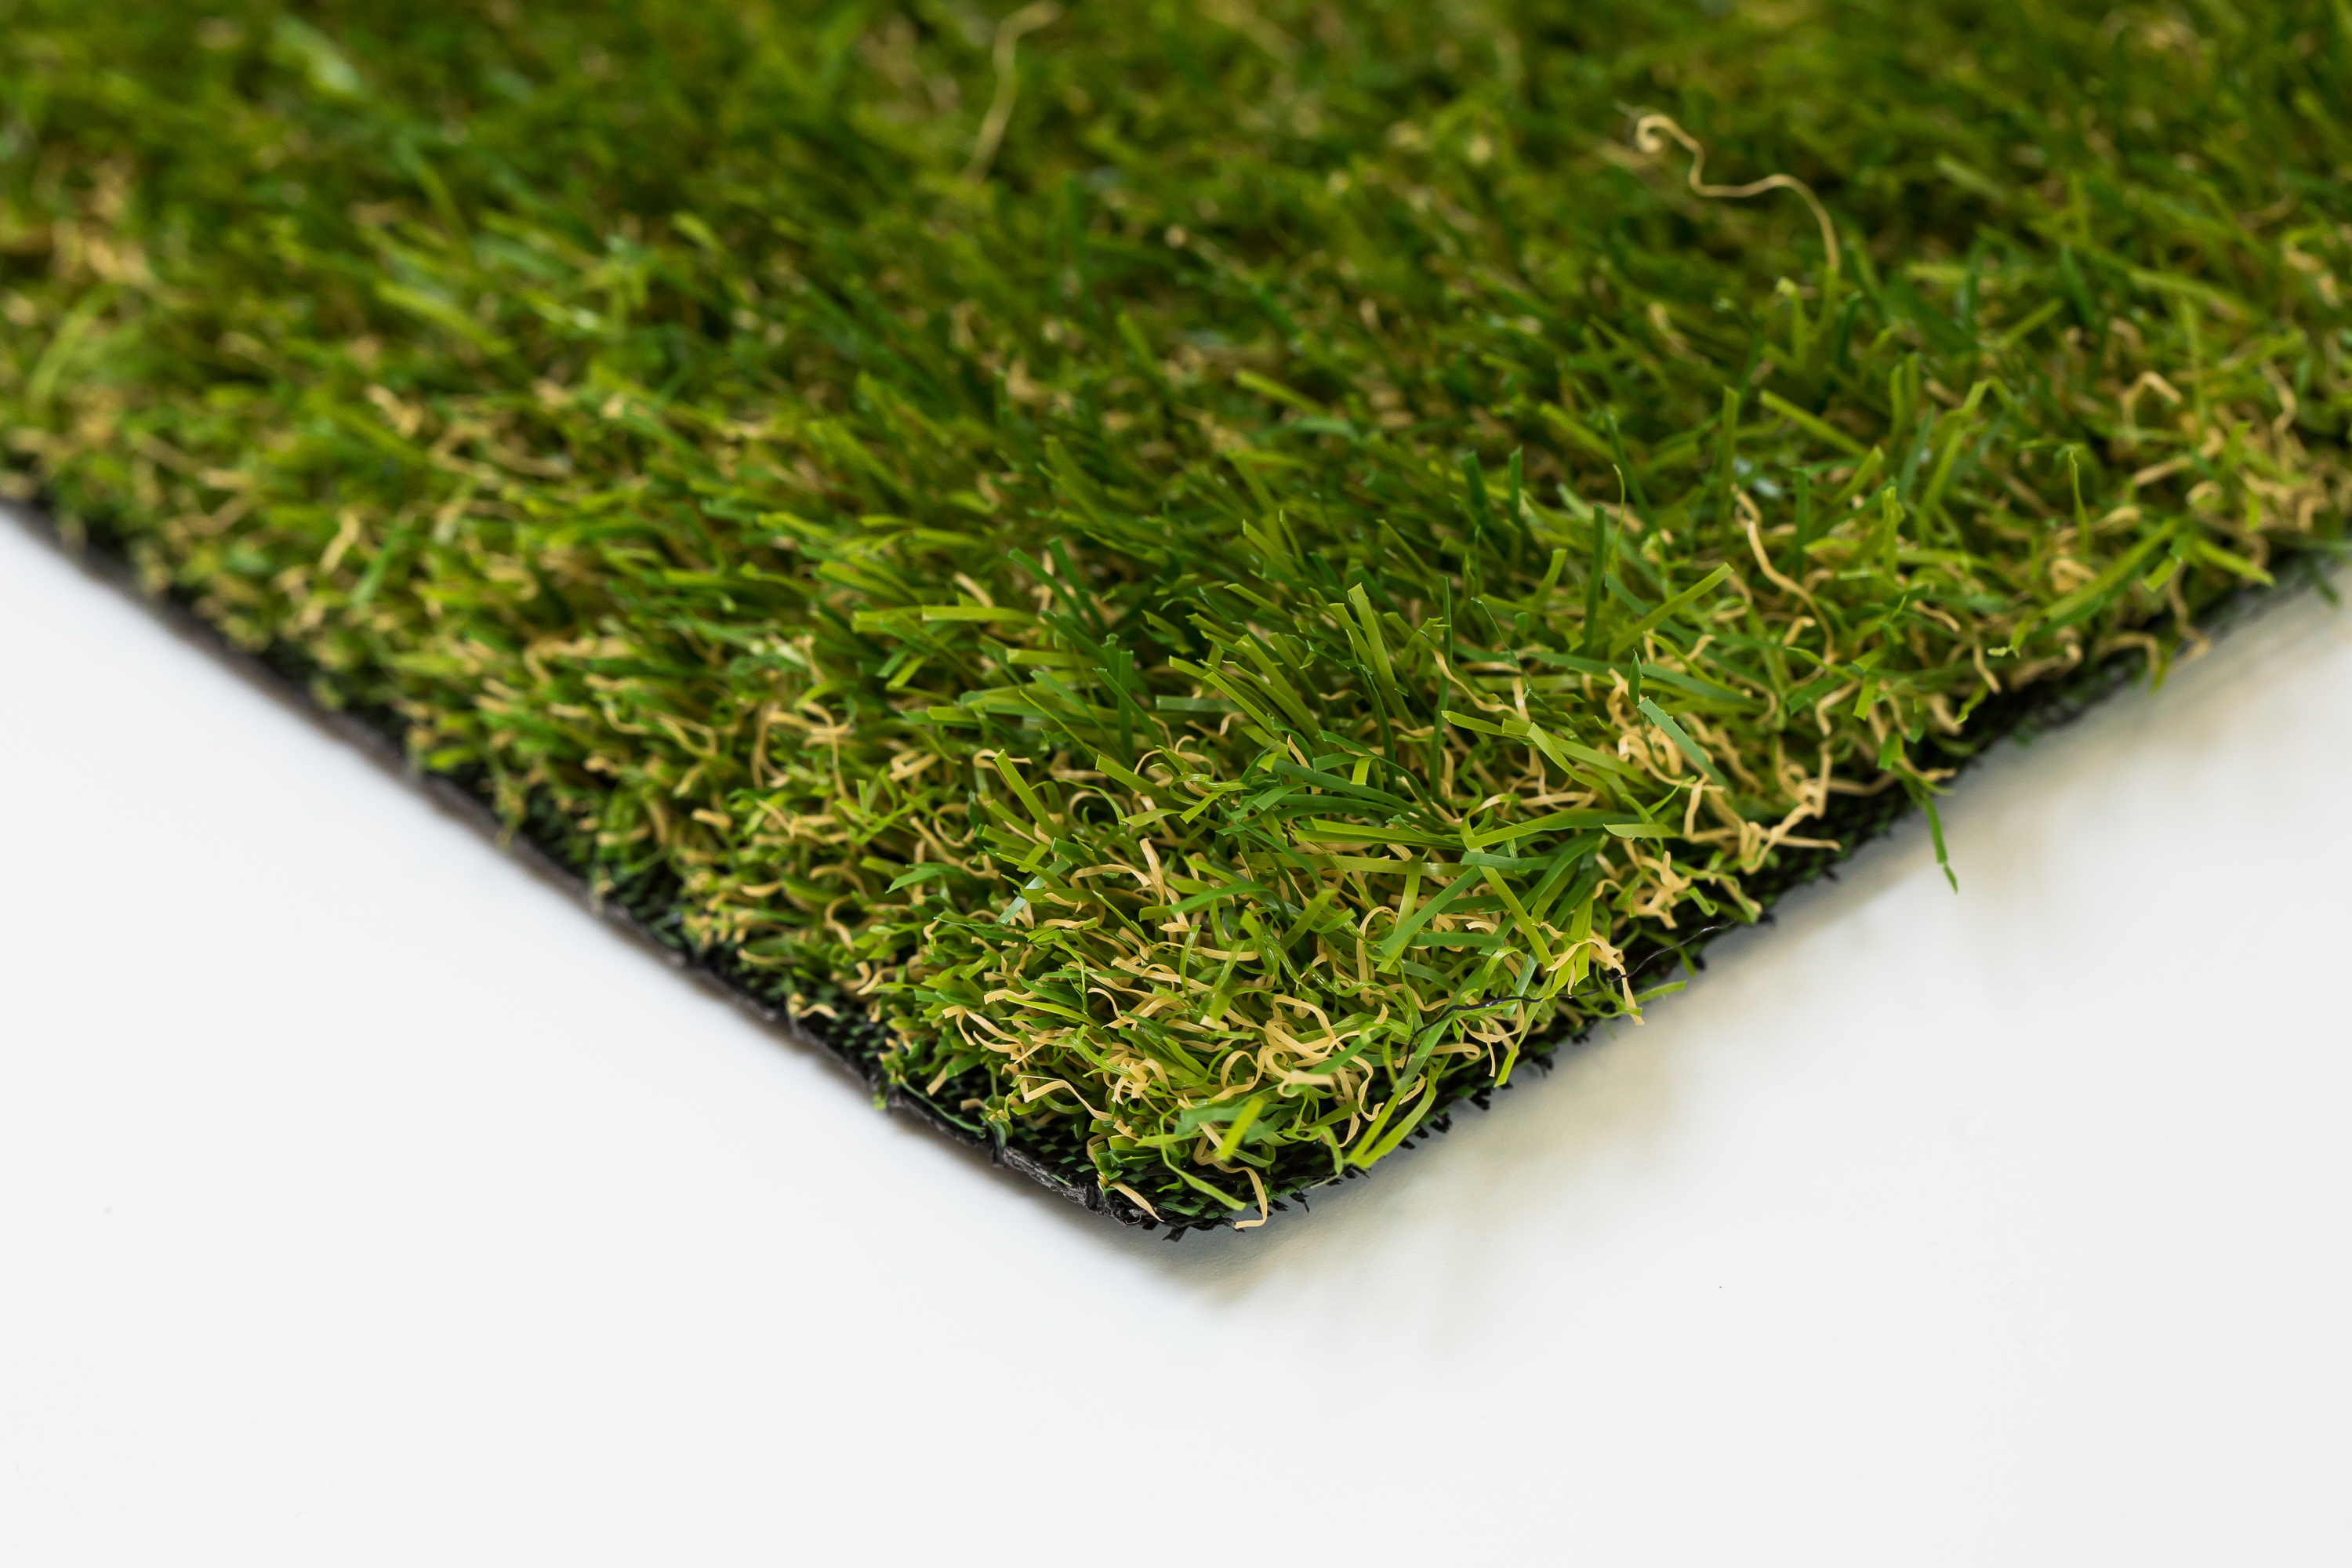 barcelona artificial grass 30mm free next day delivery. Black Bedroom Furniture Sets. Home Design Ideas